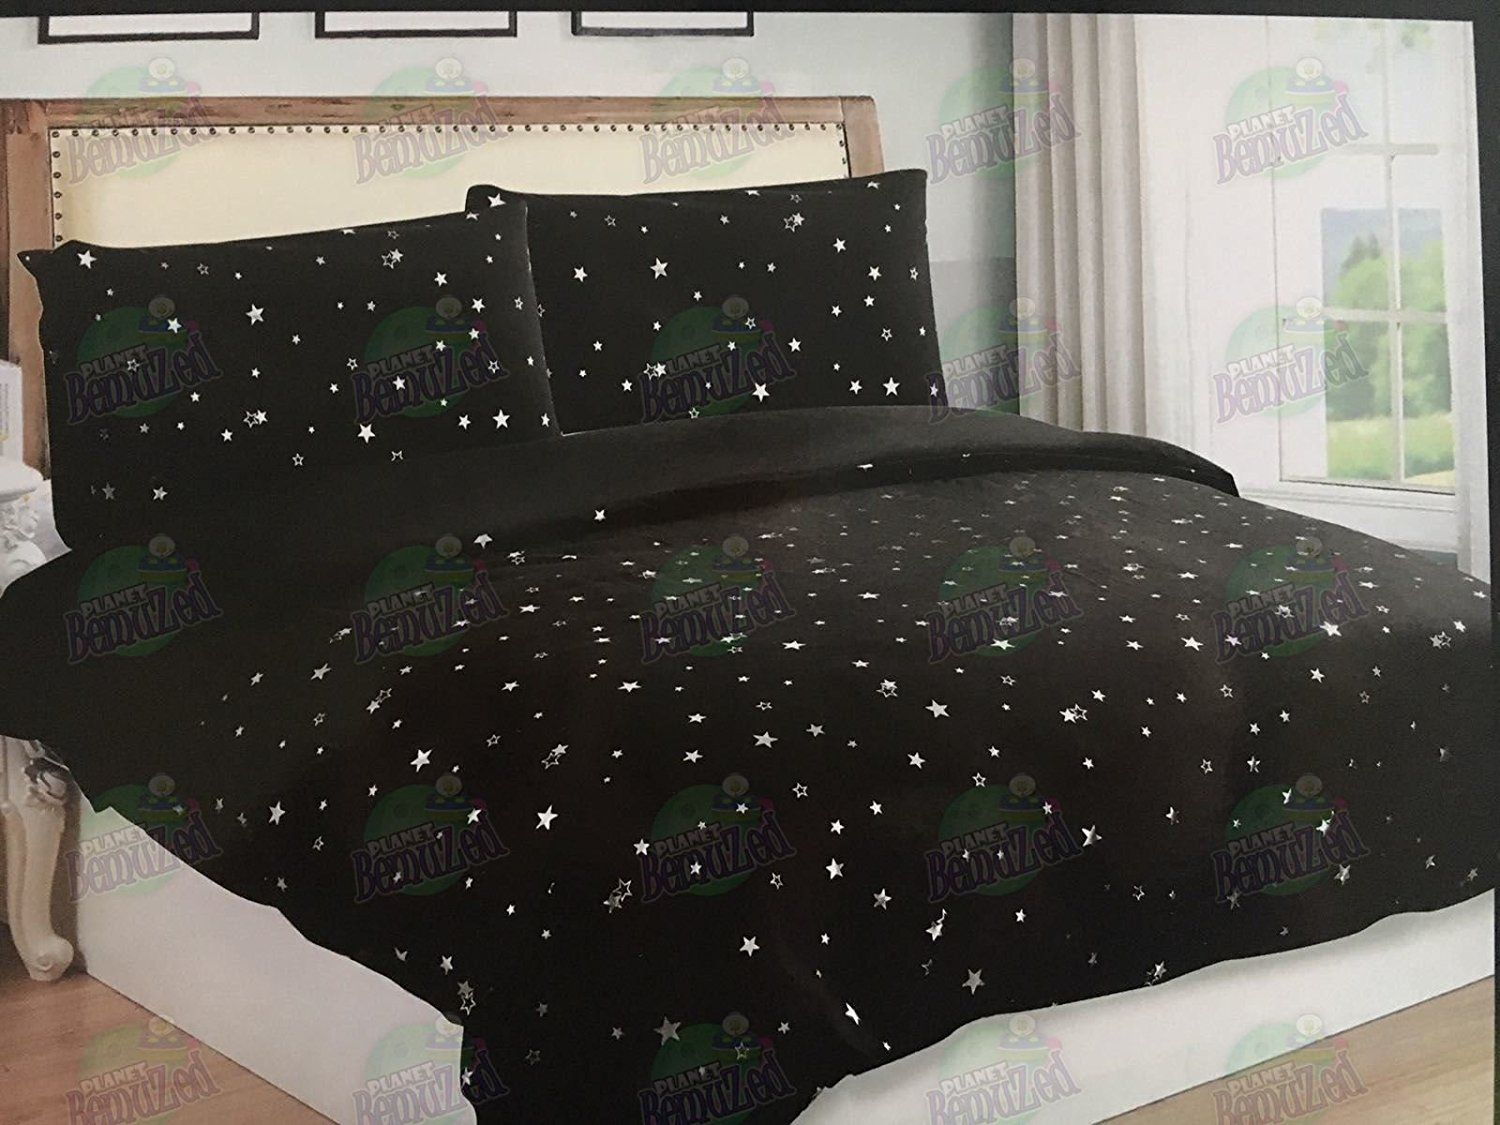 Star Starry Sky Night Duvet Quilt Cover Pillowcase S Bedding Bed Linen Set Cosysleep Single Black Amazon Co Uk Kitchen Bed Linen Sets Quilted Duvet Bed